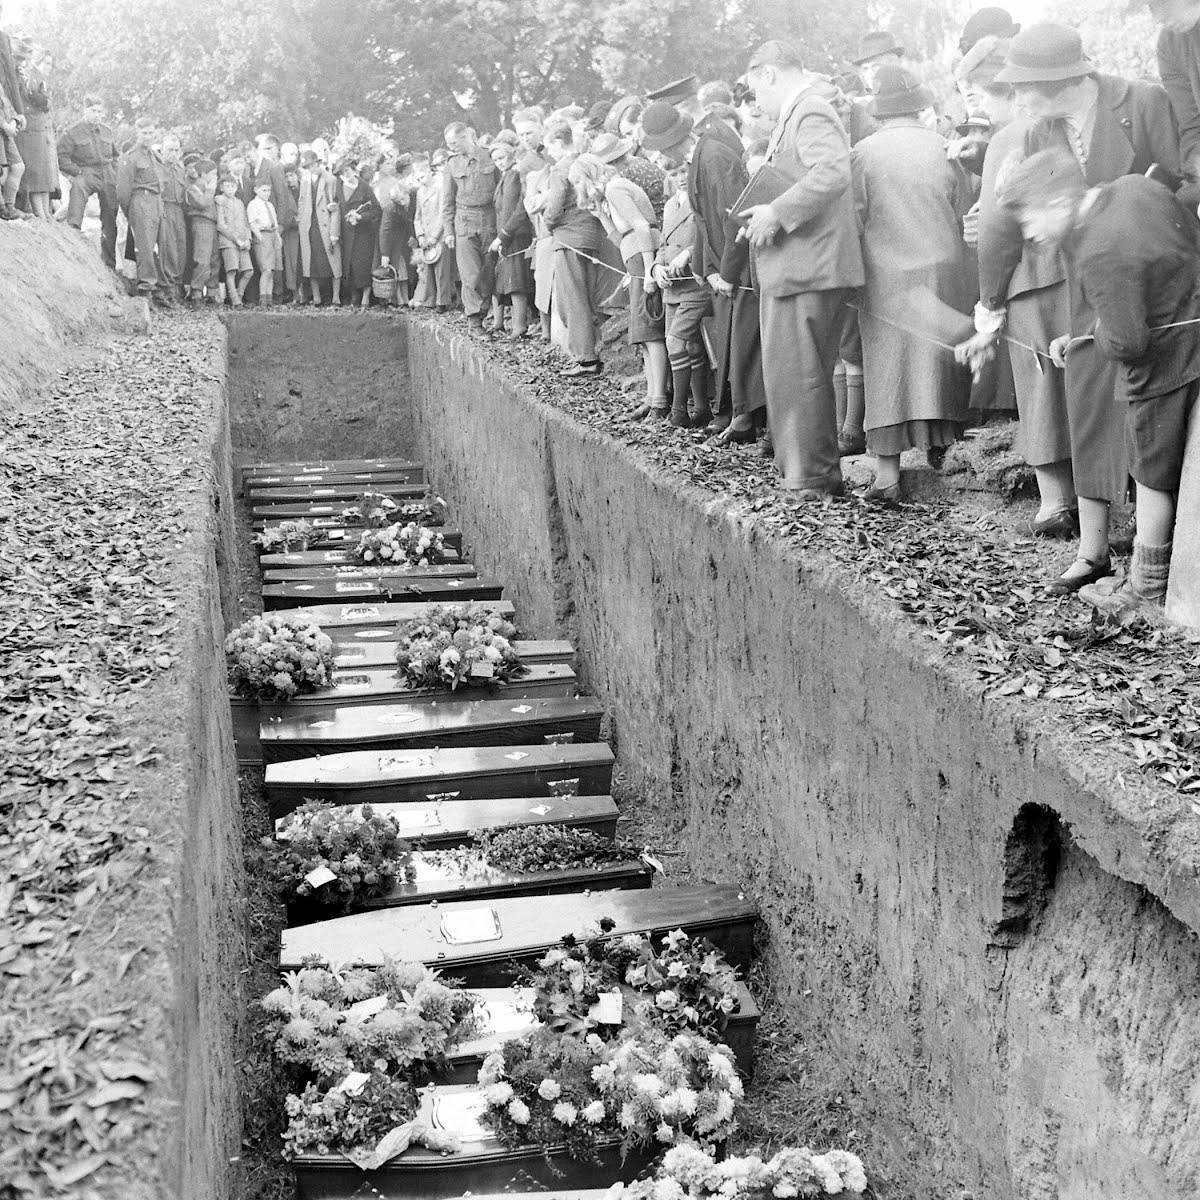 Bombed School: Childrens Funeral